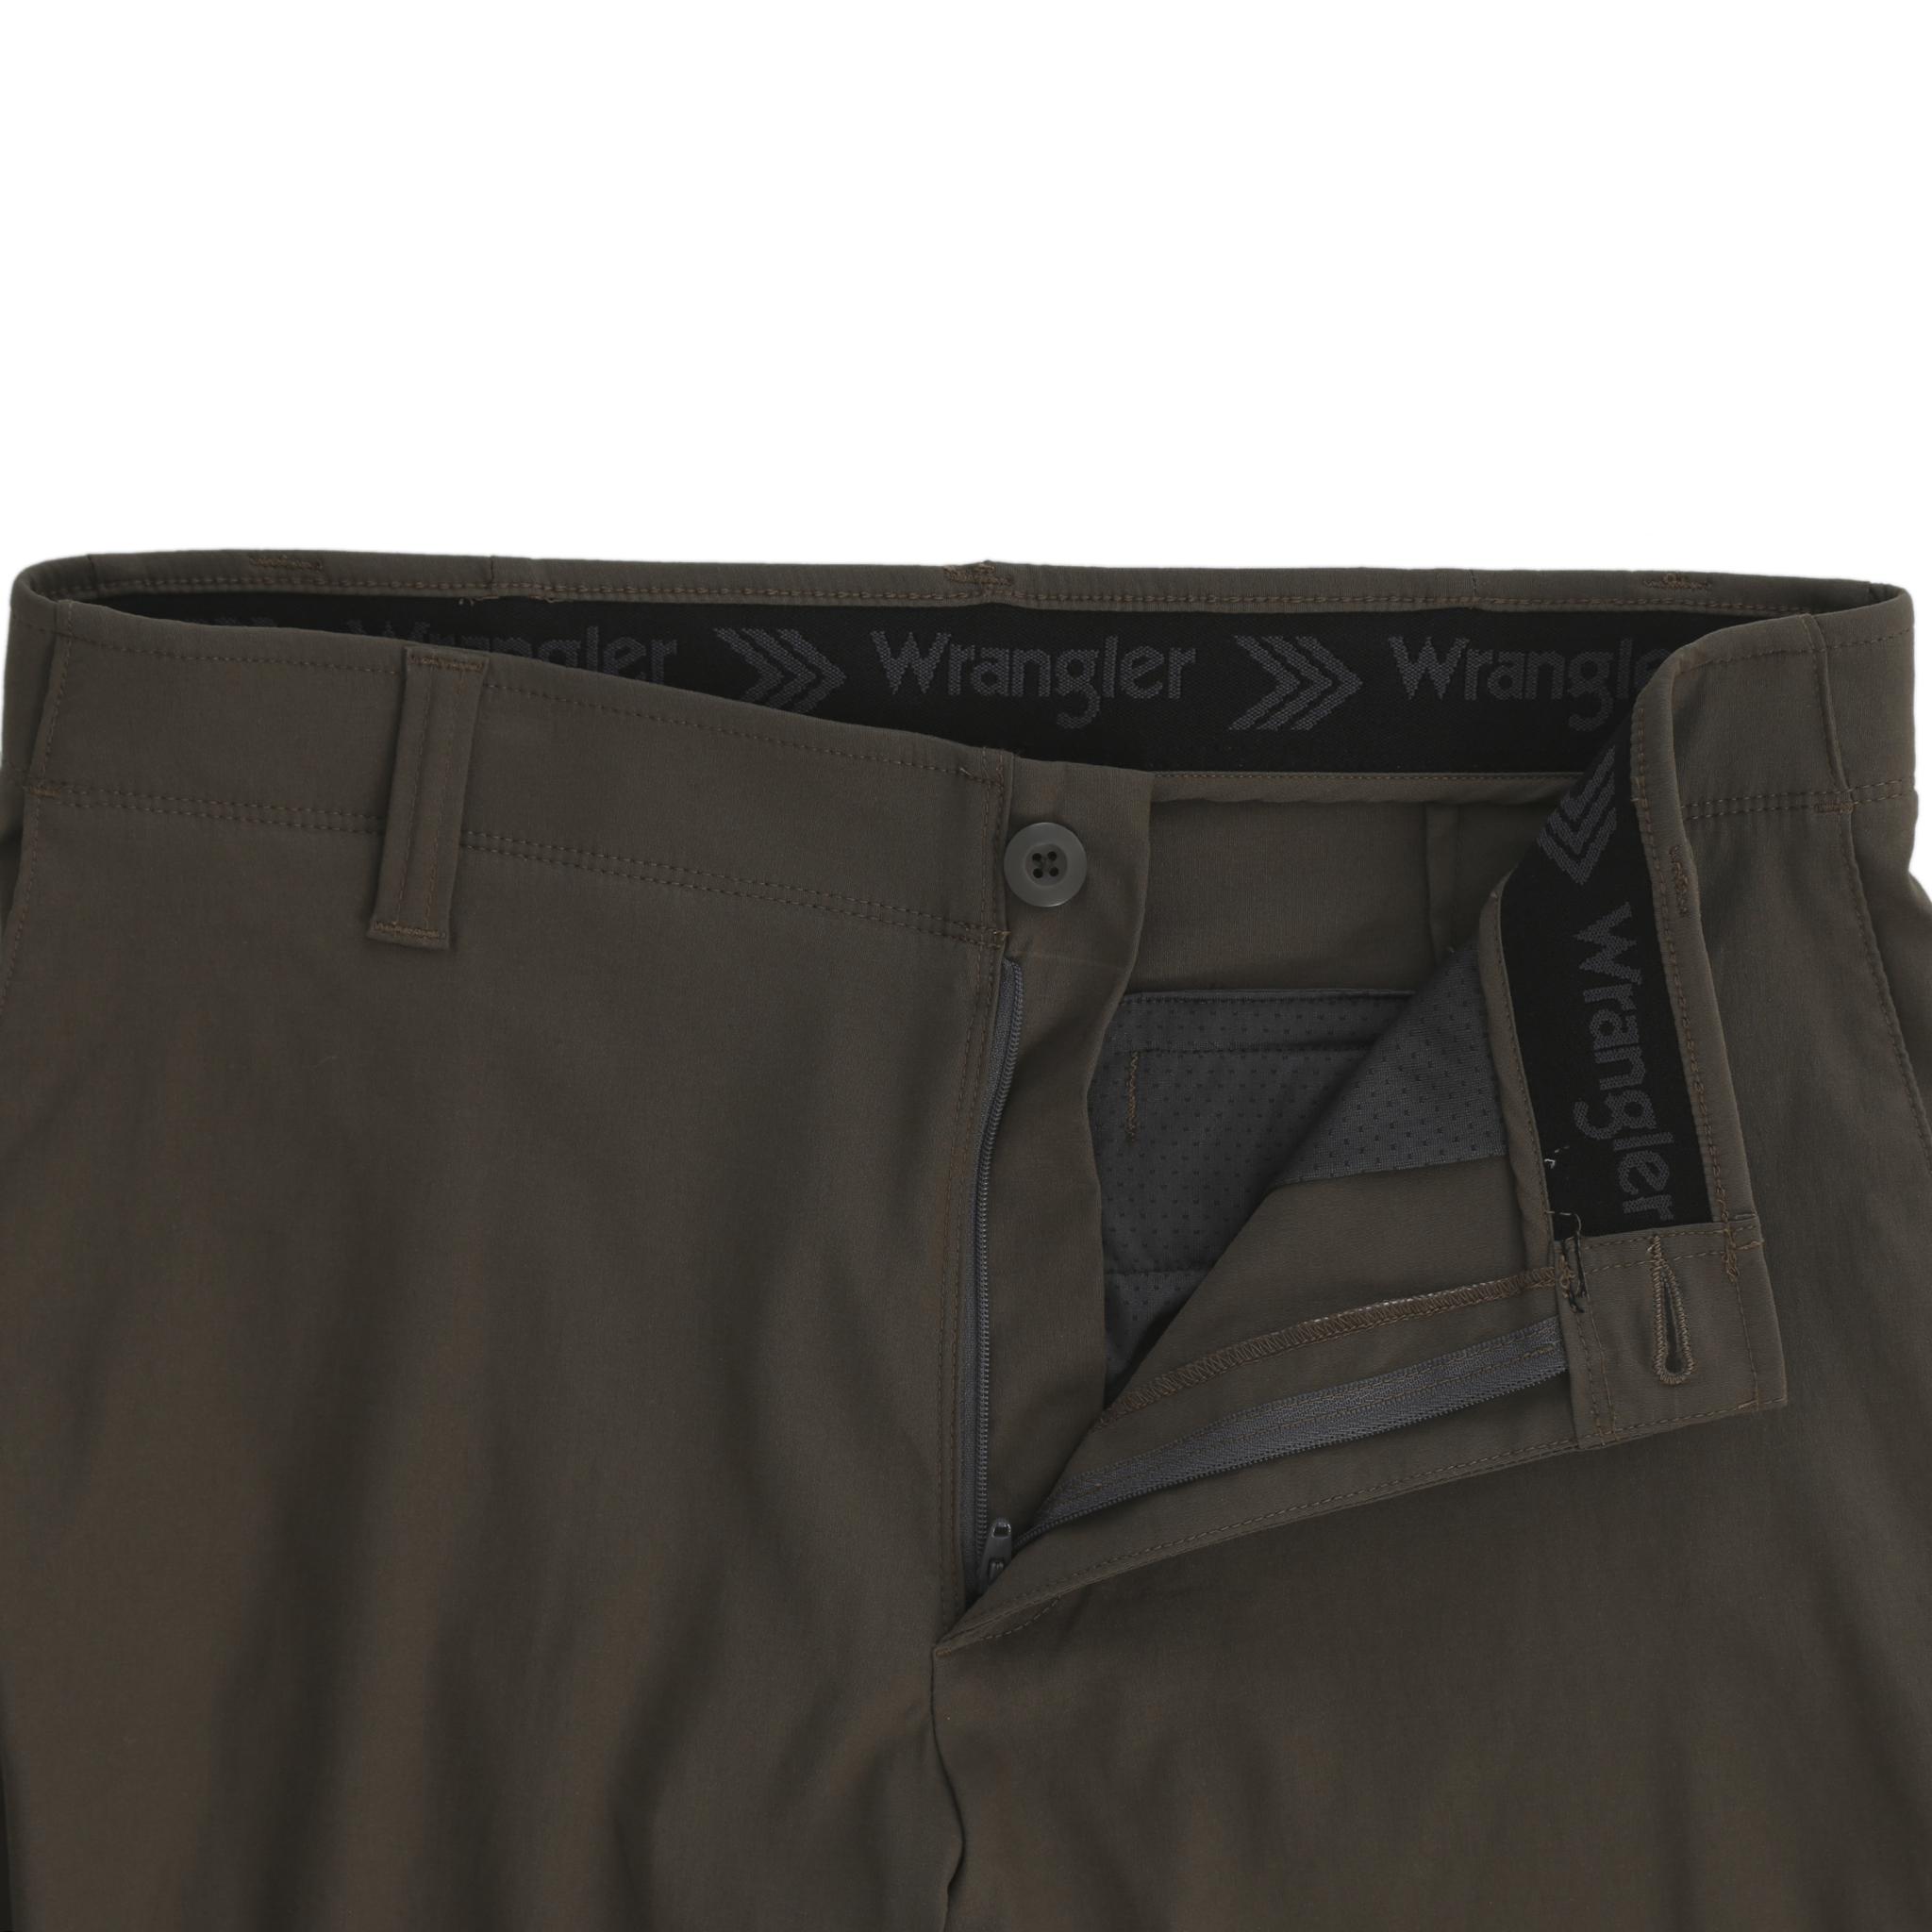 Wrangler-NEW-Solid-Men-039-s-Performance-Series-Outdoor-Comfort-Straight-Leg-Pants thumbnail 13